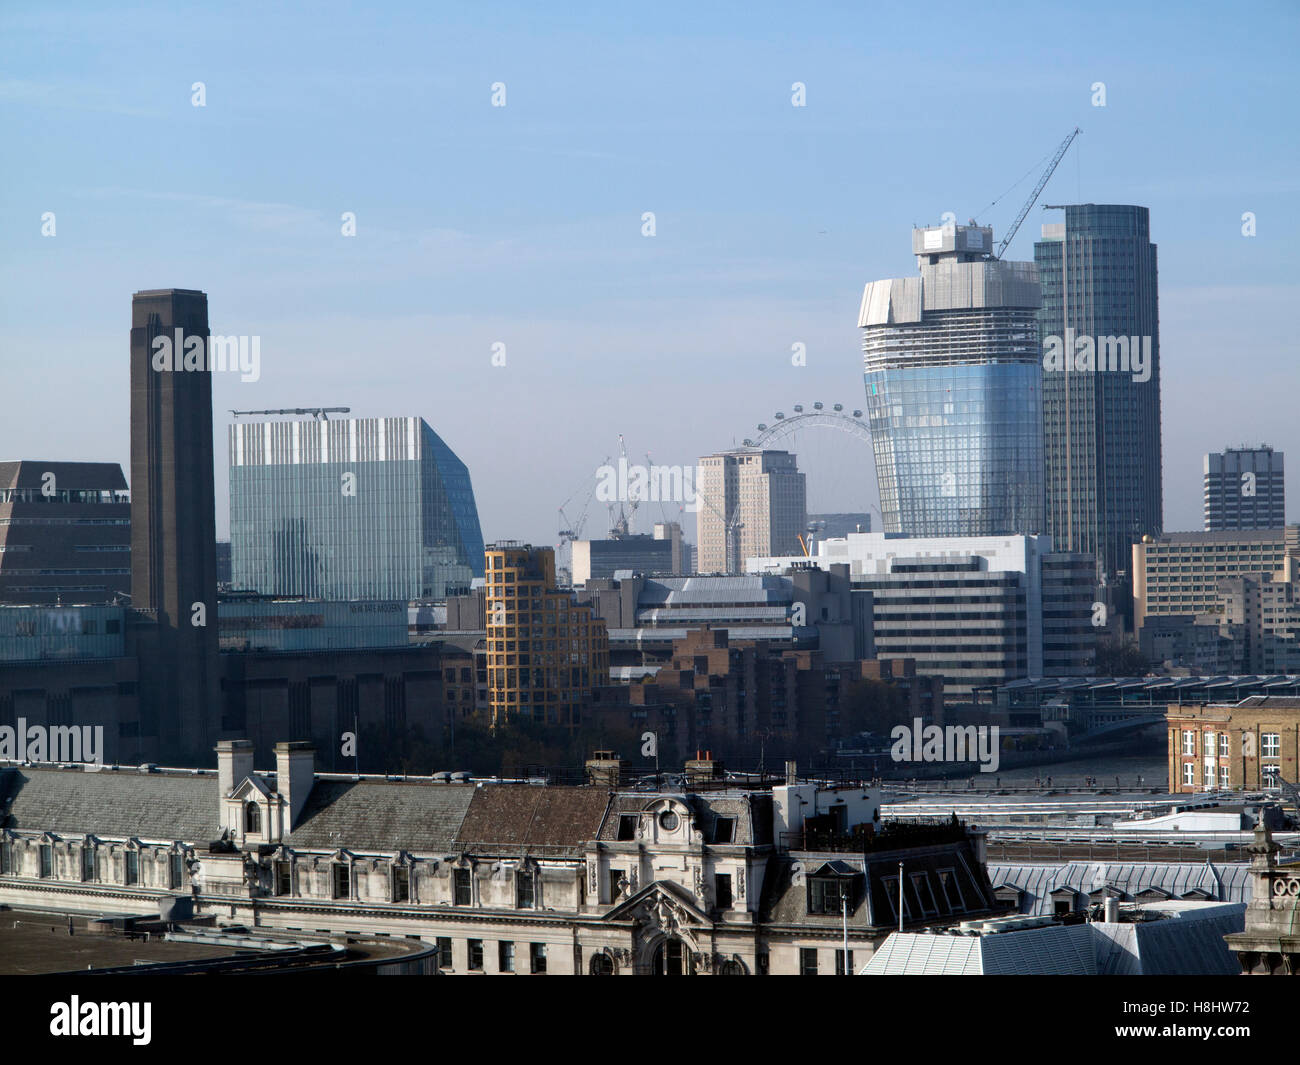 London:  Tate Modern, London Eye, OXO Tower, Royal Festival Hall, National Theatre and British Film Institute on - Stock Image